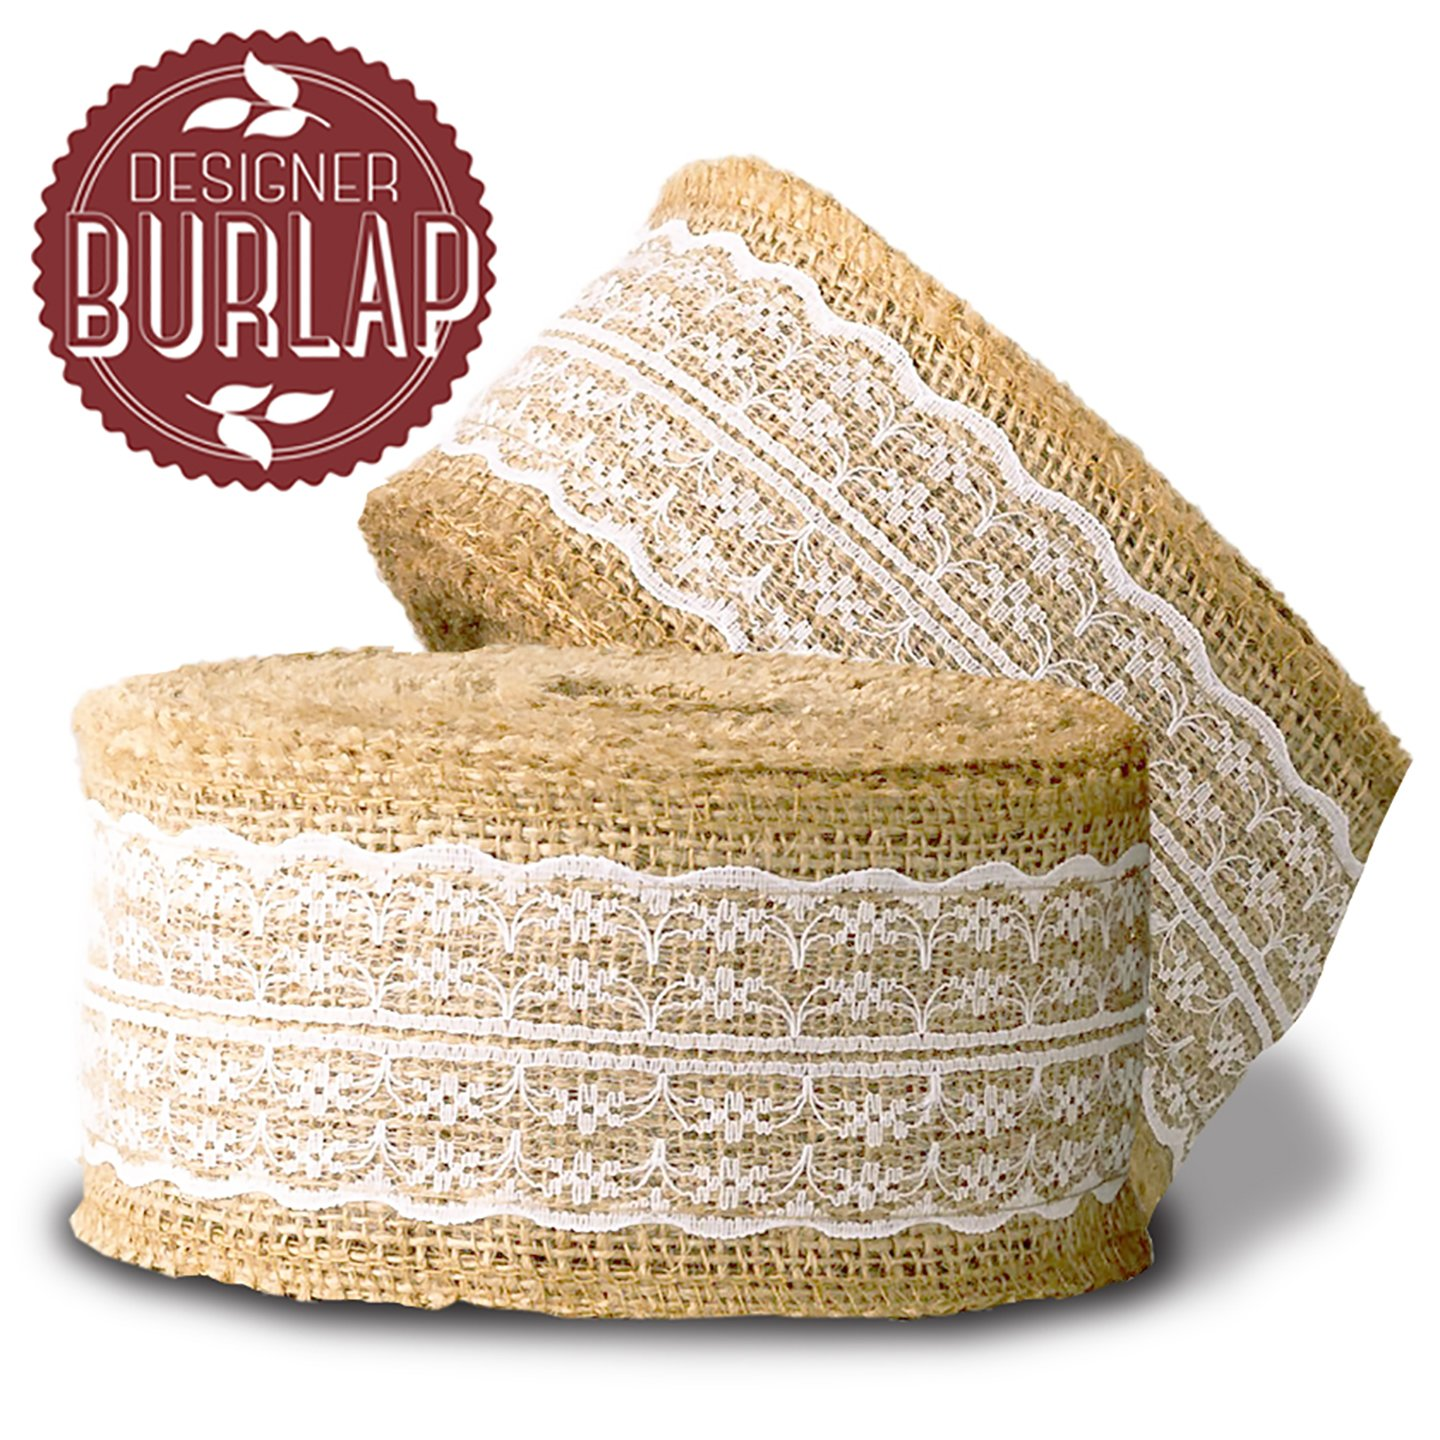 Burlap Ribbon With White Lace 468 Inches Long This Is April Hesian Top Perfect For Wedding Decorations Tie Backs Sashes Wreaths Bows